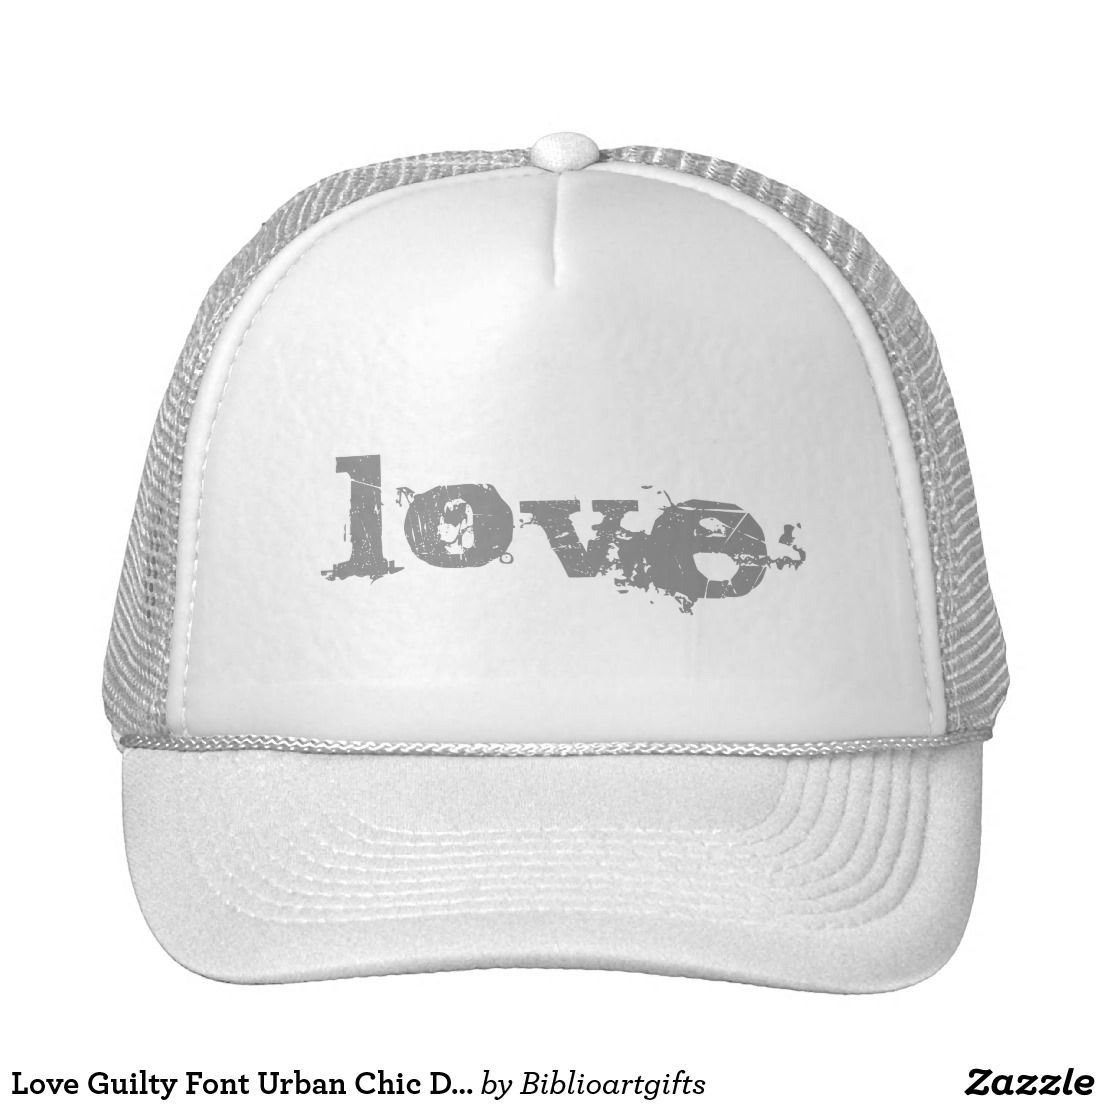 Love Guilty Font Urban Chic Design Inspire